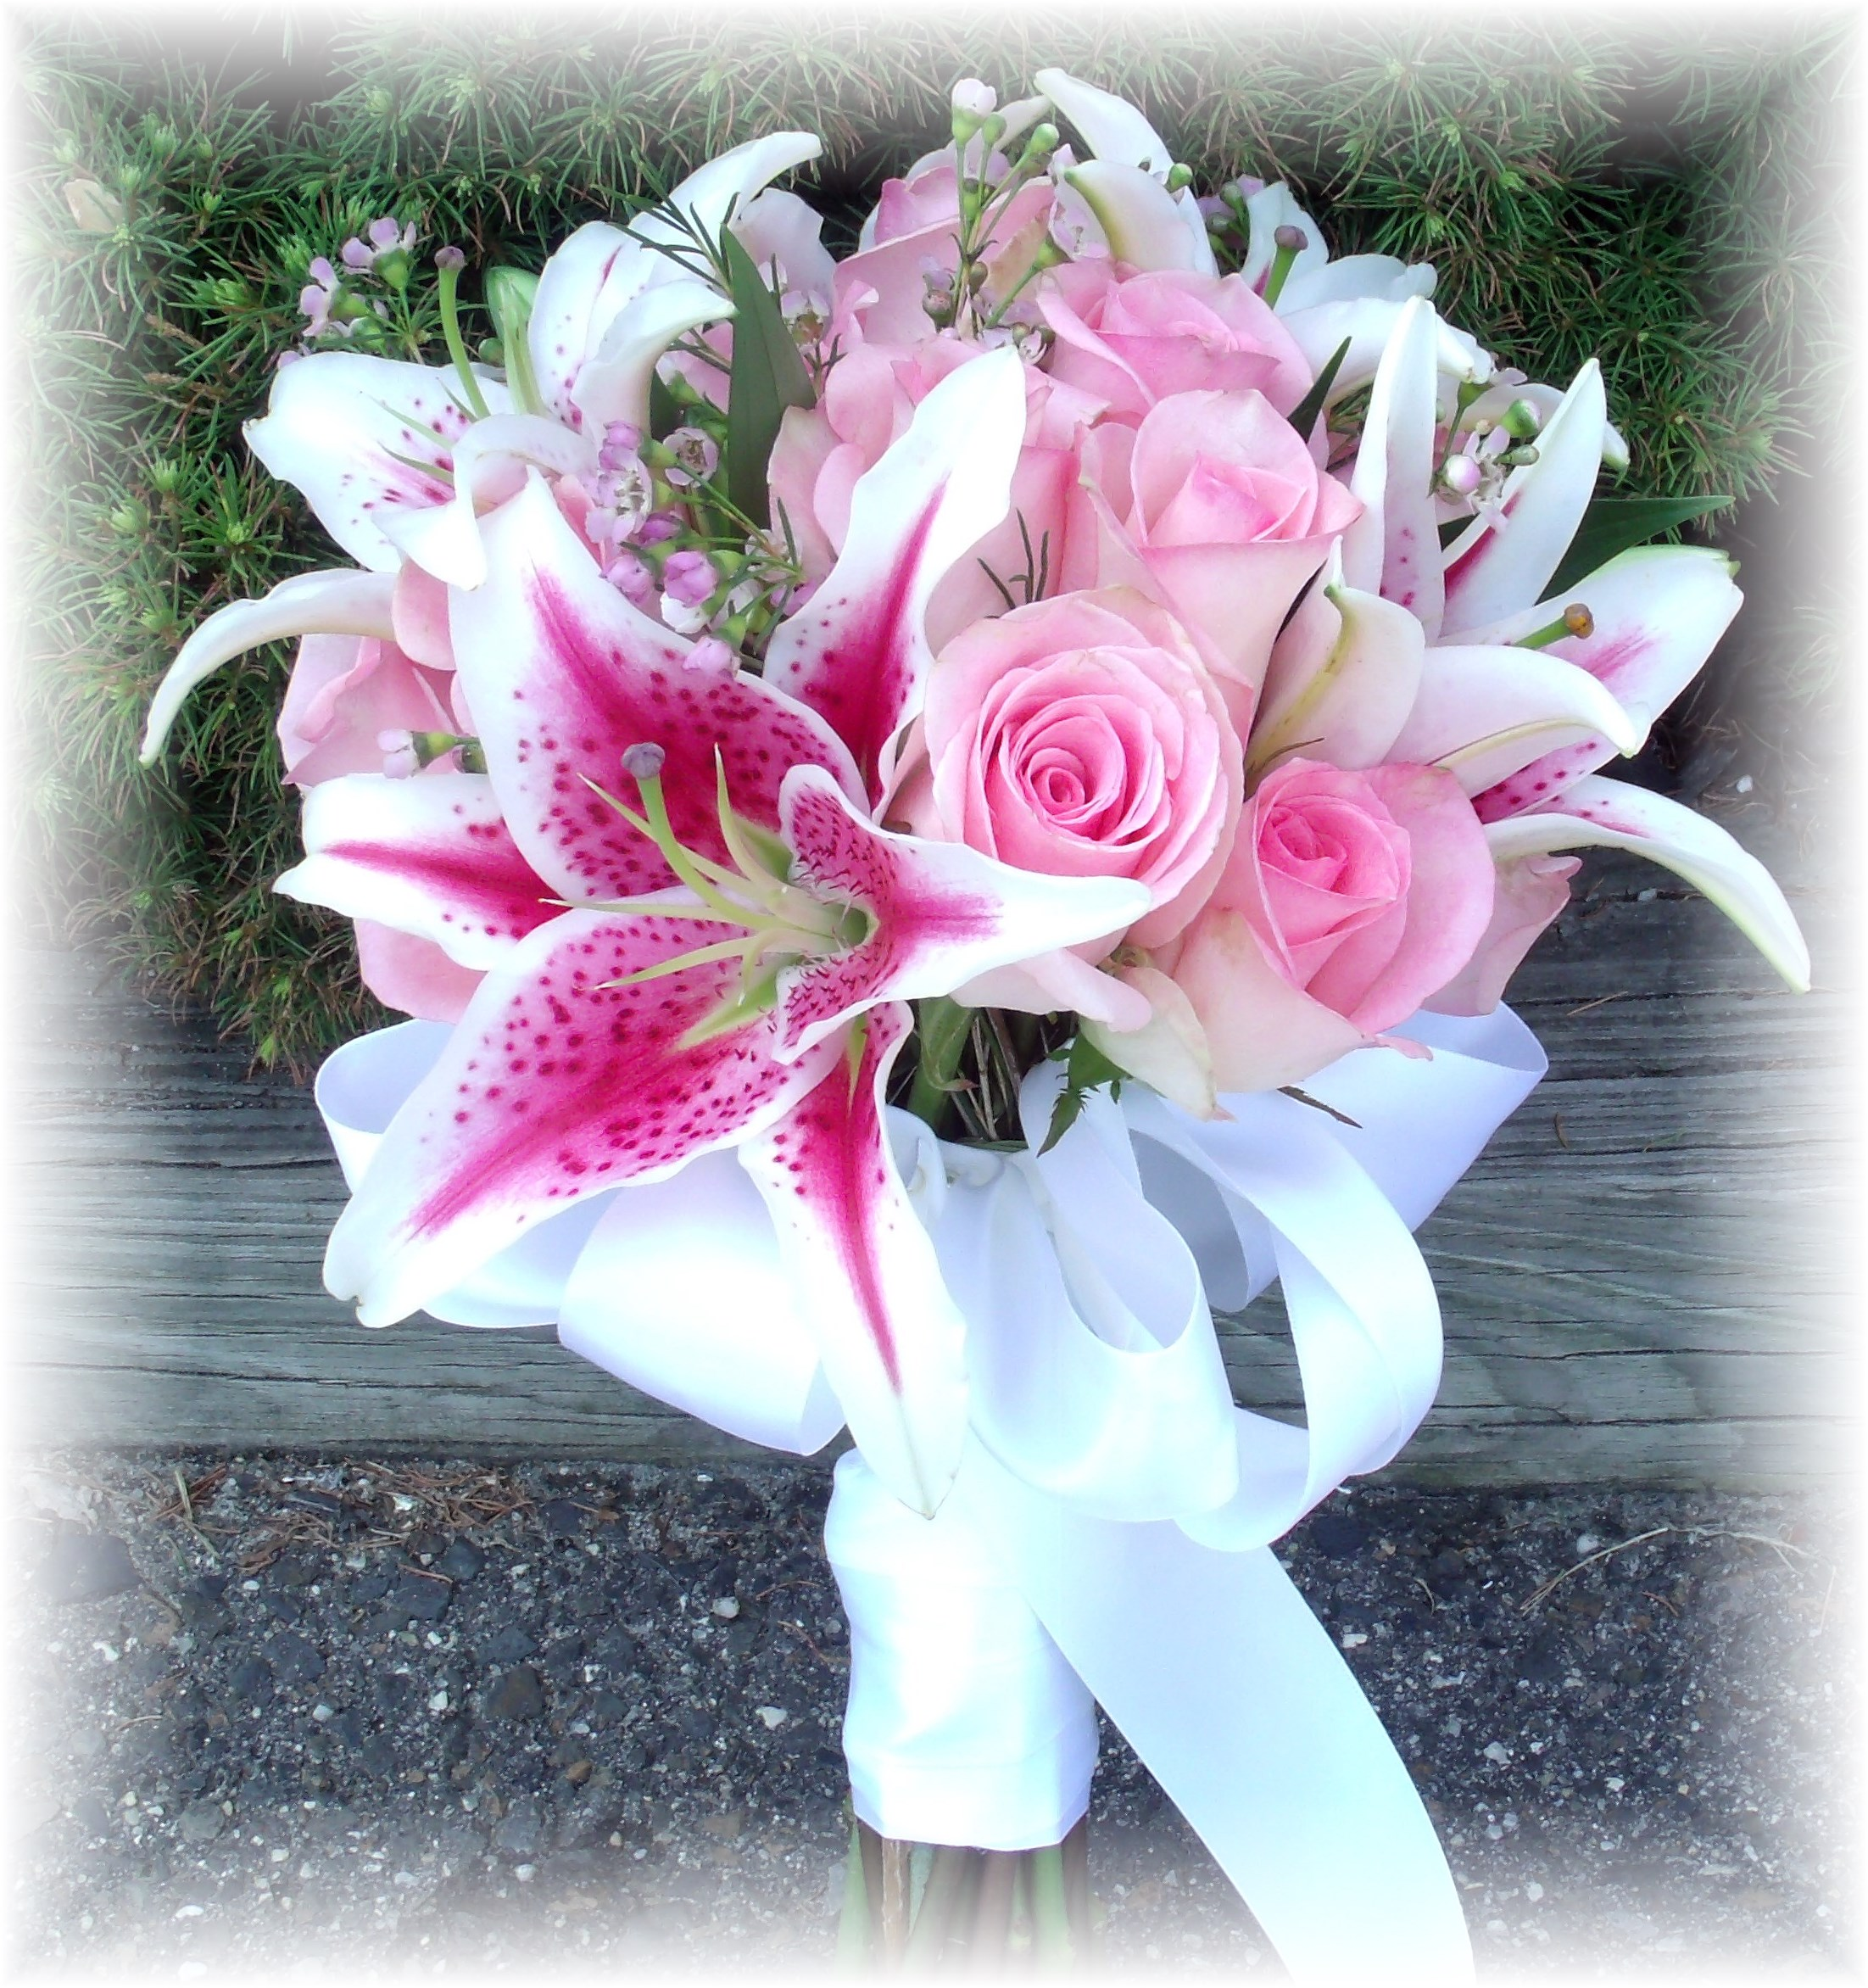 Stargazer lilies and rose